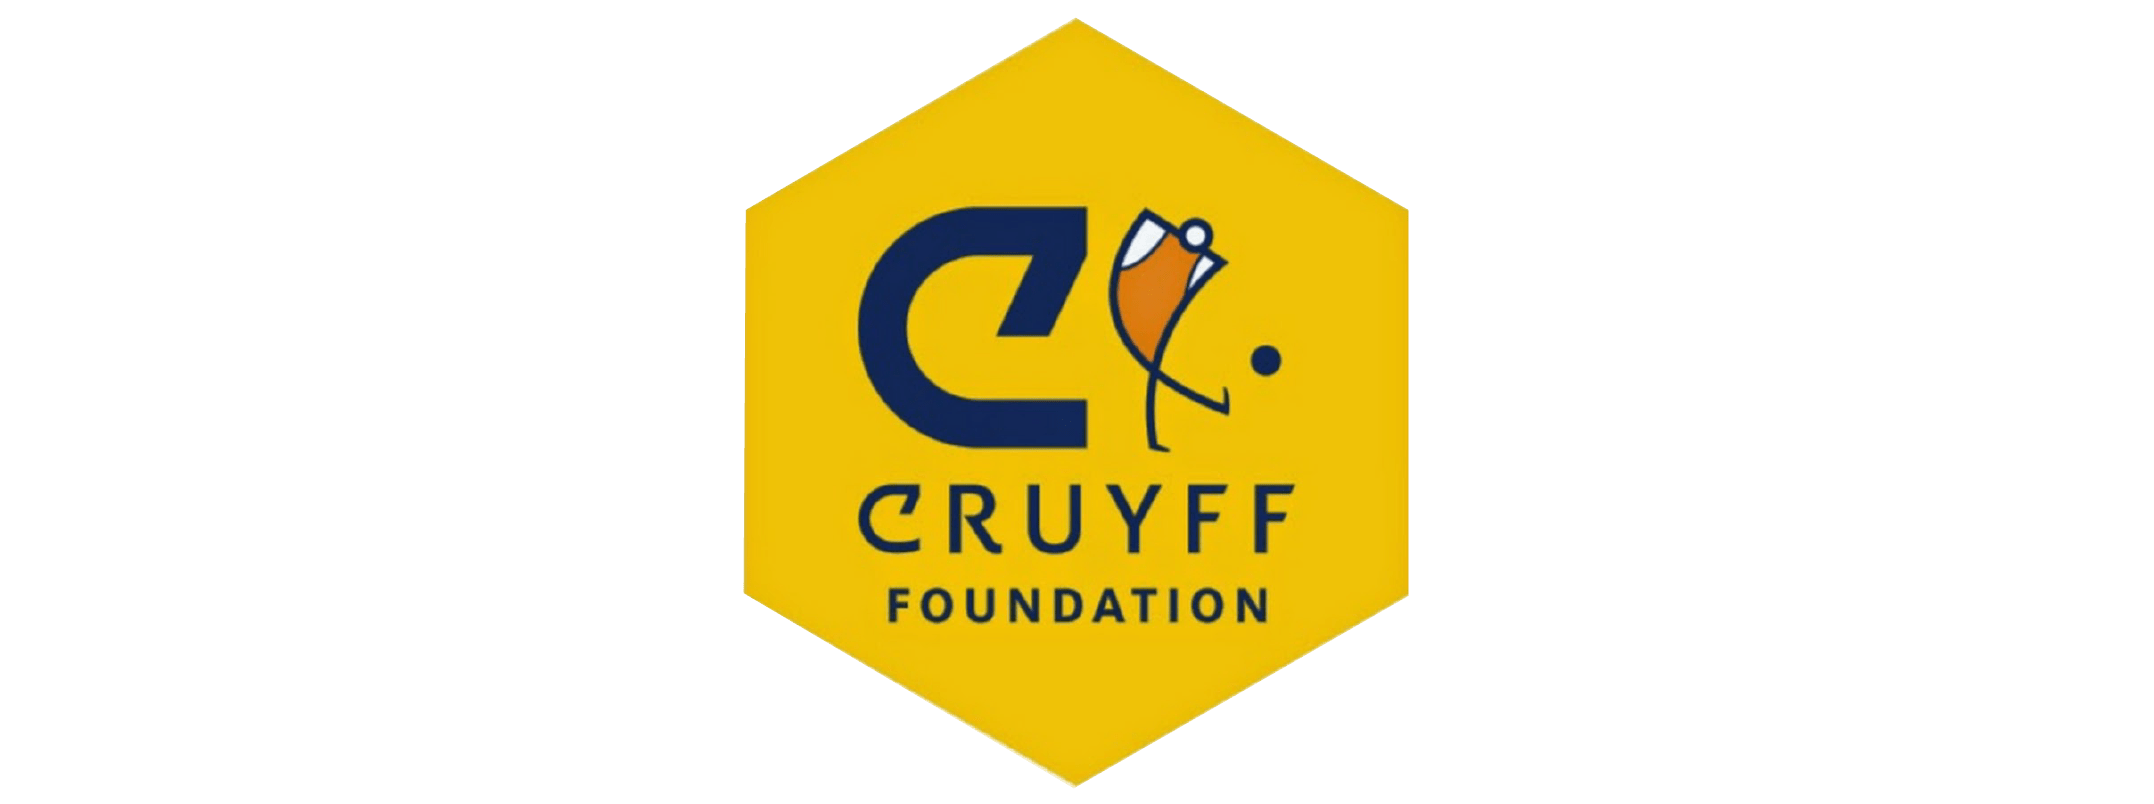 Cruyff Foundation